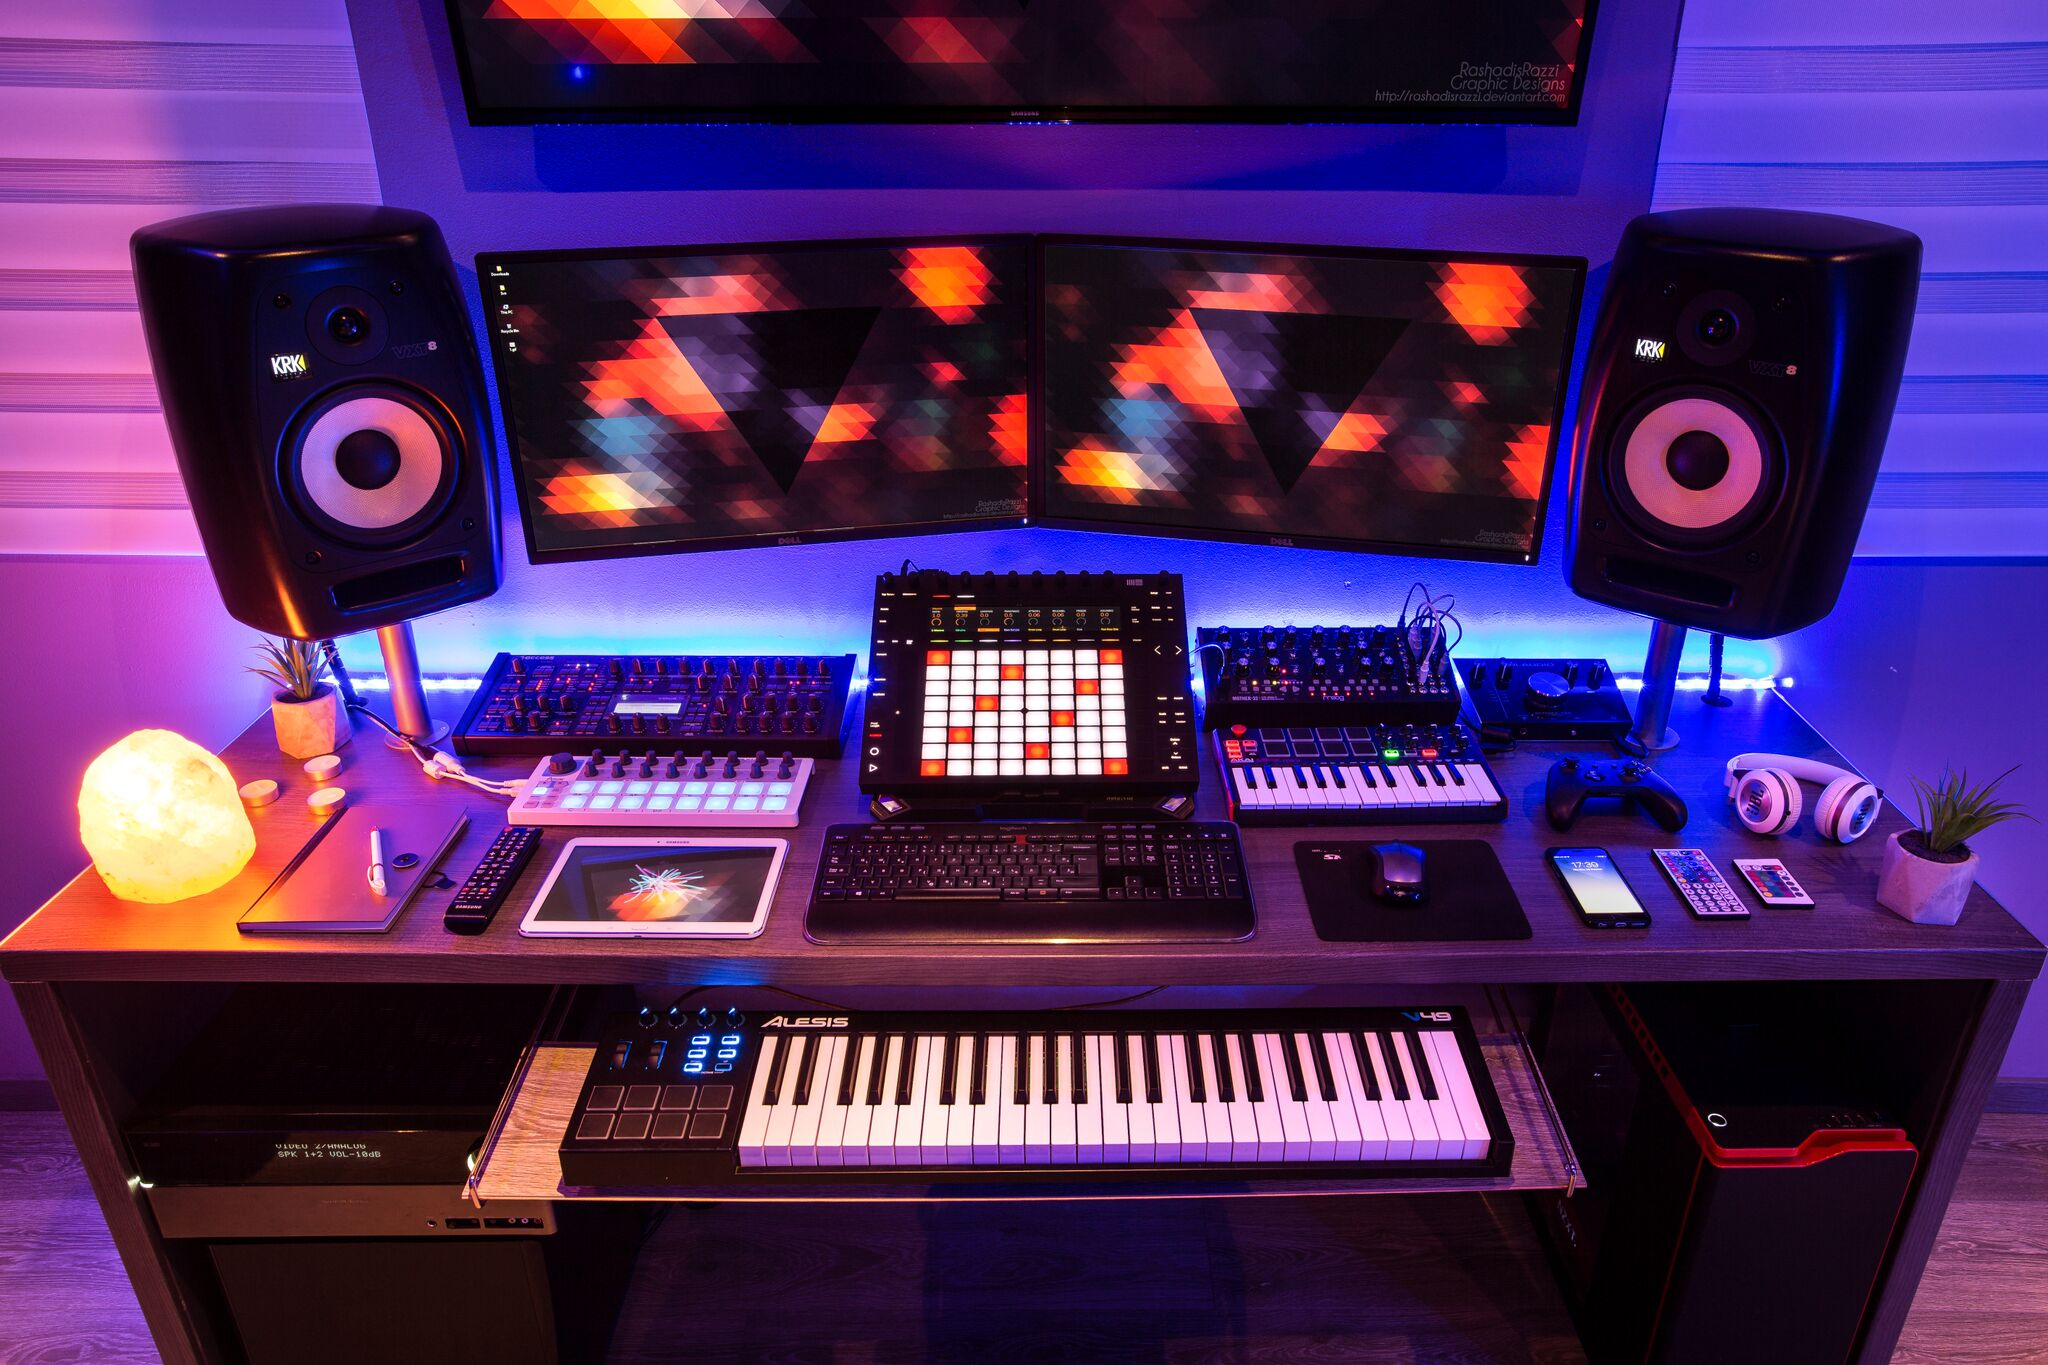 Show Off Your Studio - Your Most Striking Studios